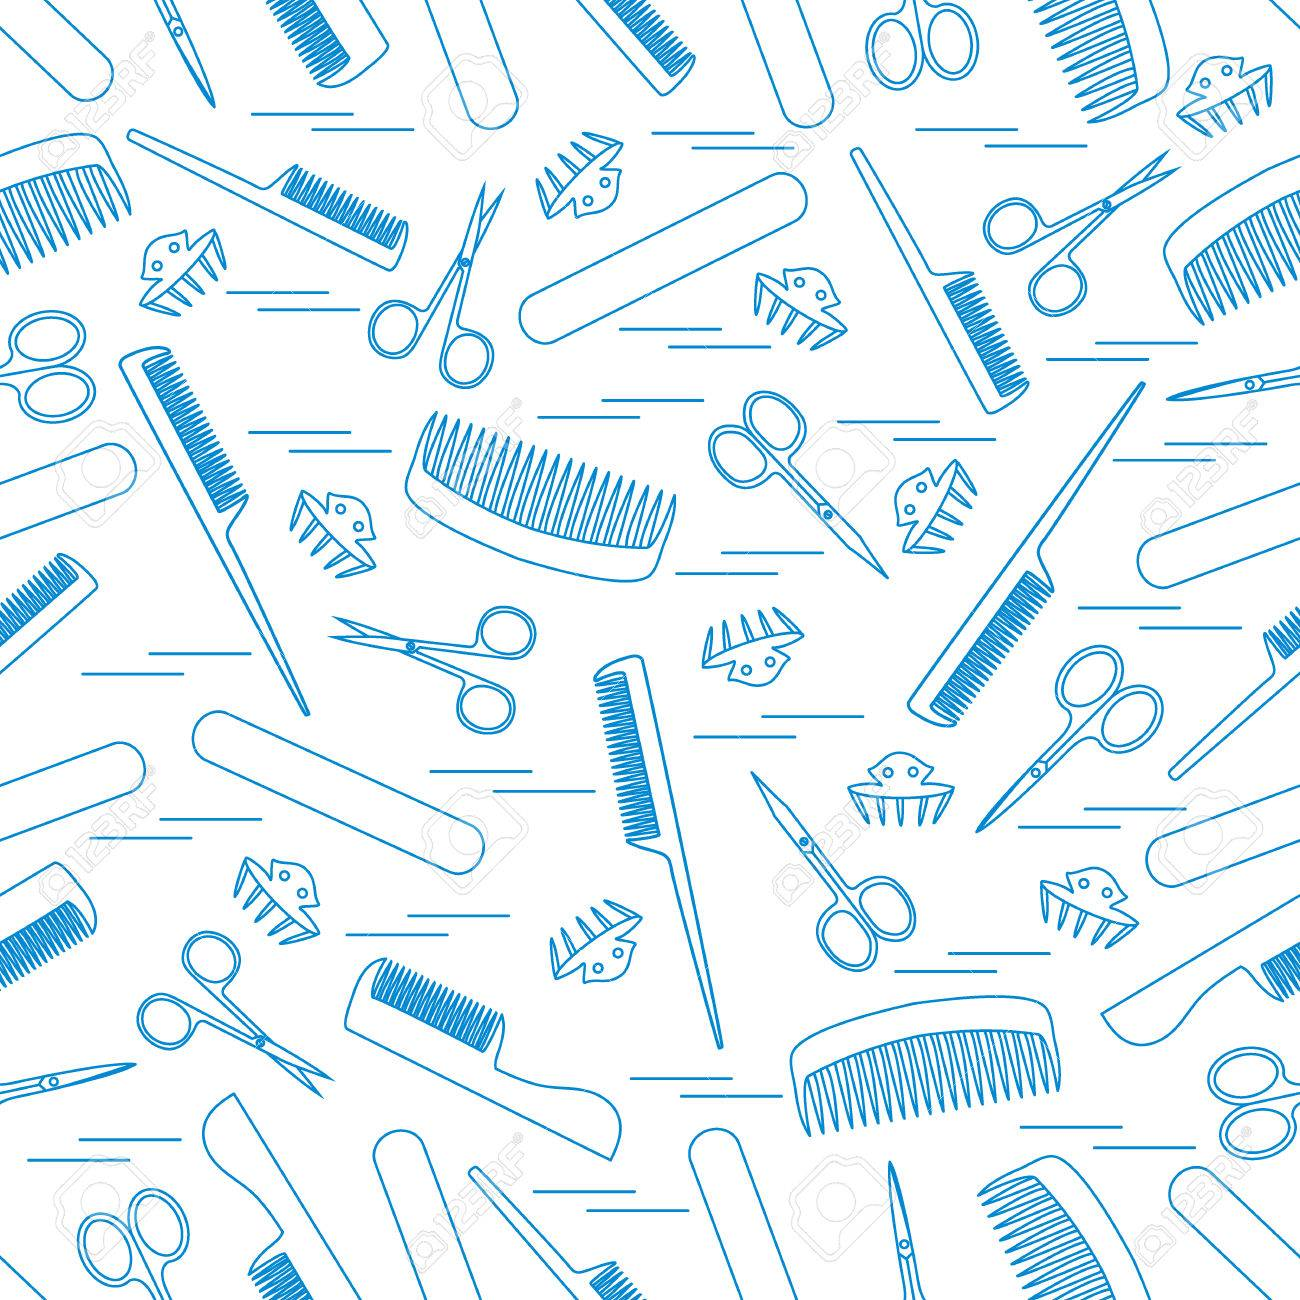 Cute pattern of scissors for manicure and pedicure, combs, nail file, barrettes. Design for banner, flyer, poster or print. - 67259019